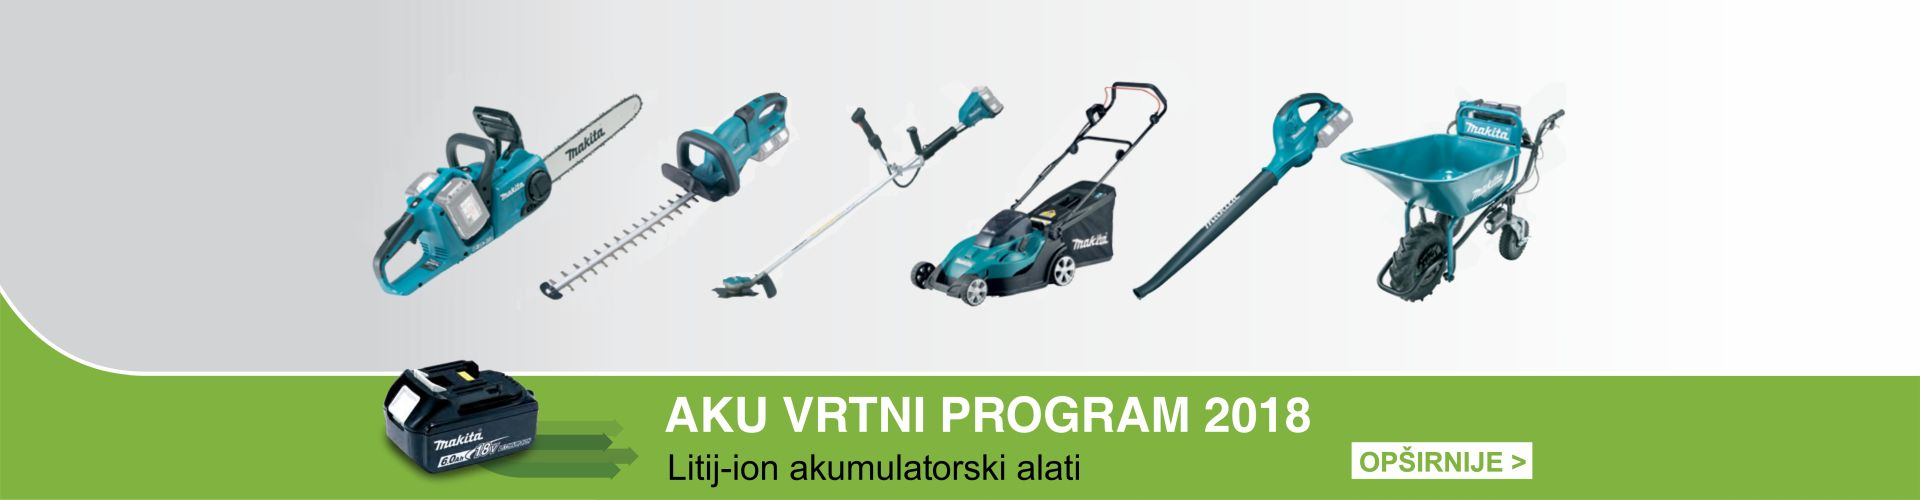 AKU VRTNI PROGRAM MAKITA